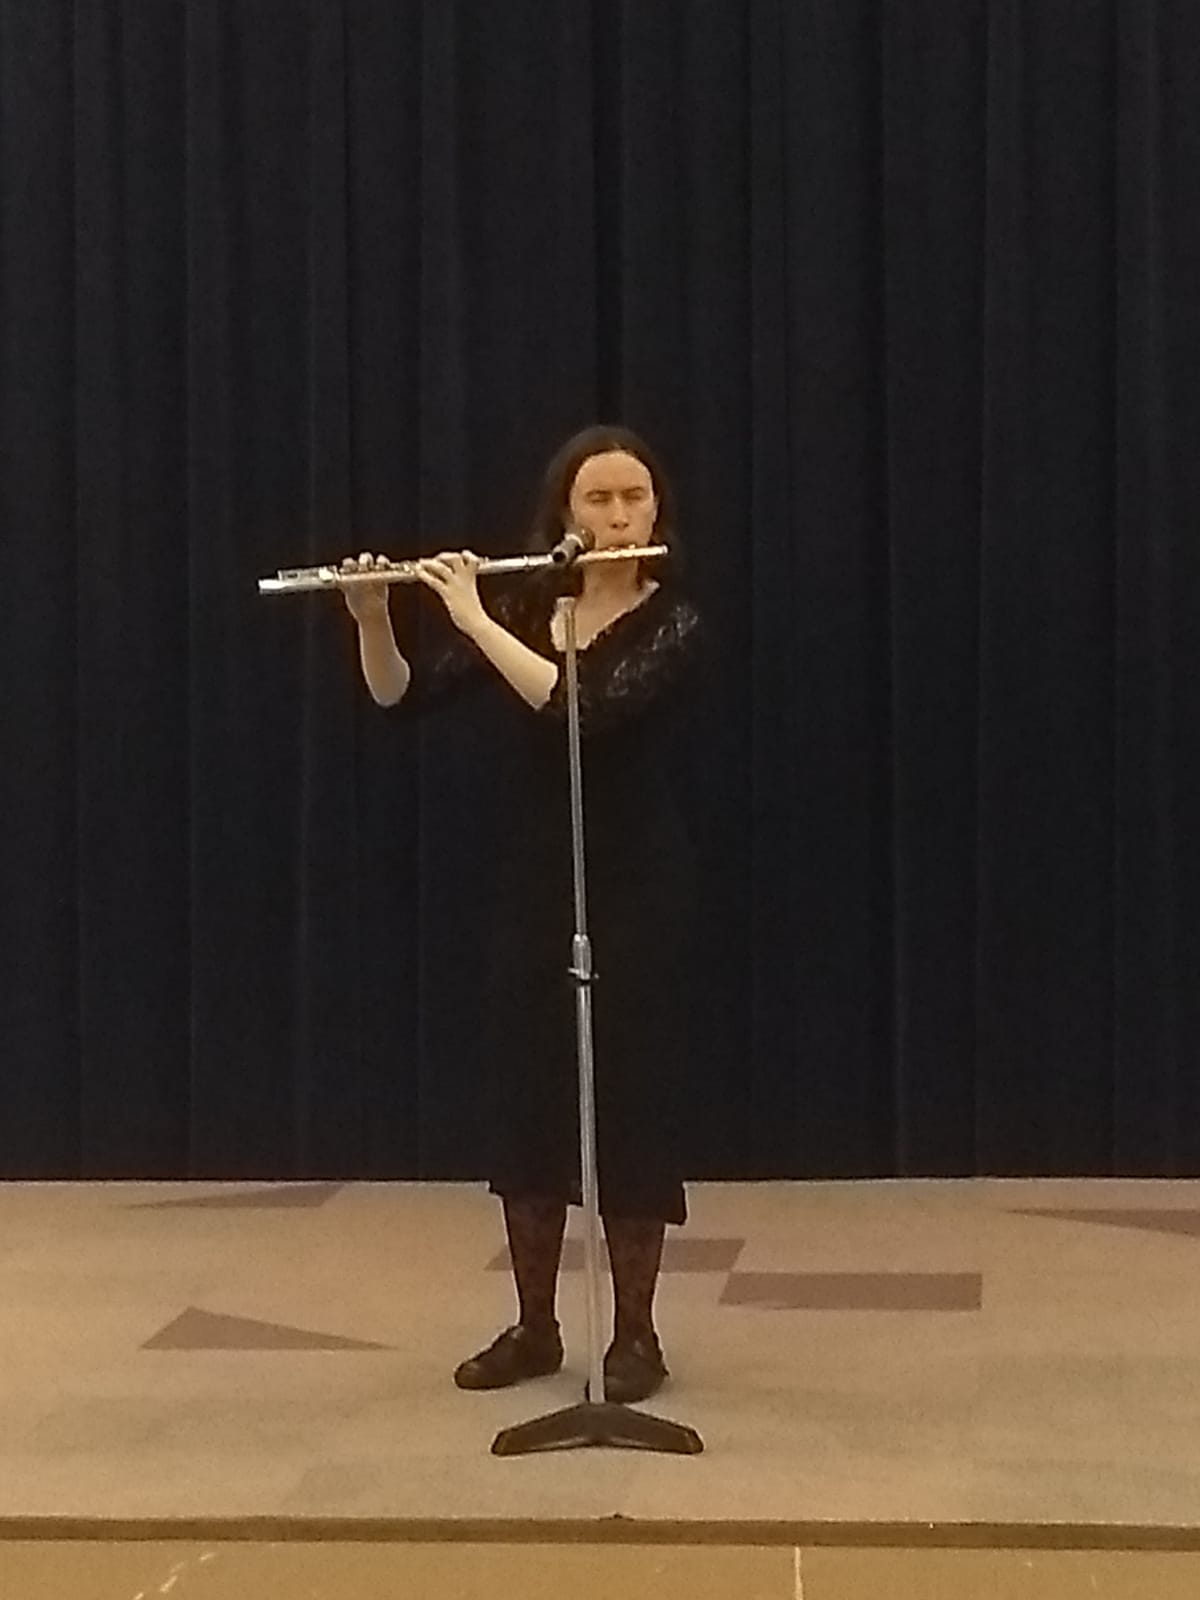 I, a European-presening white woman, am wearing a black dress playing flute. You can see the stage, a microphone I'm playing into, and a black curtain behind me.